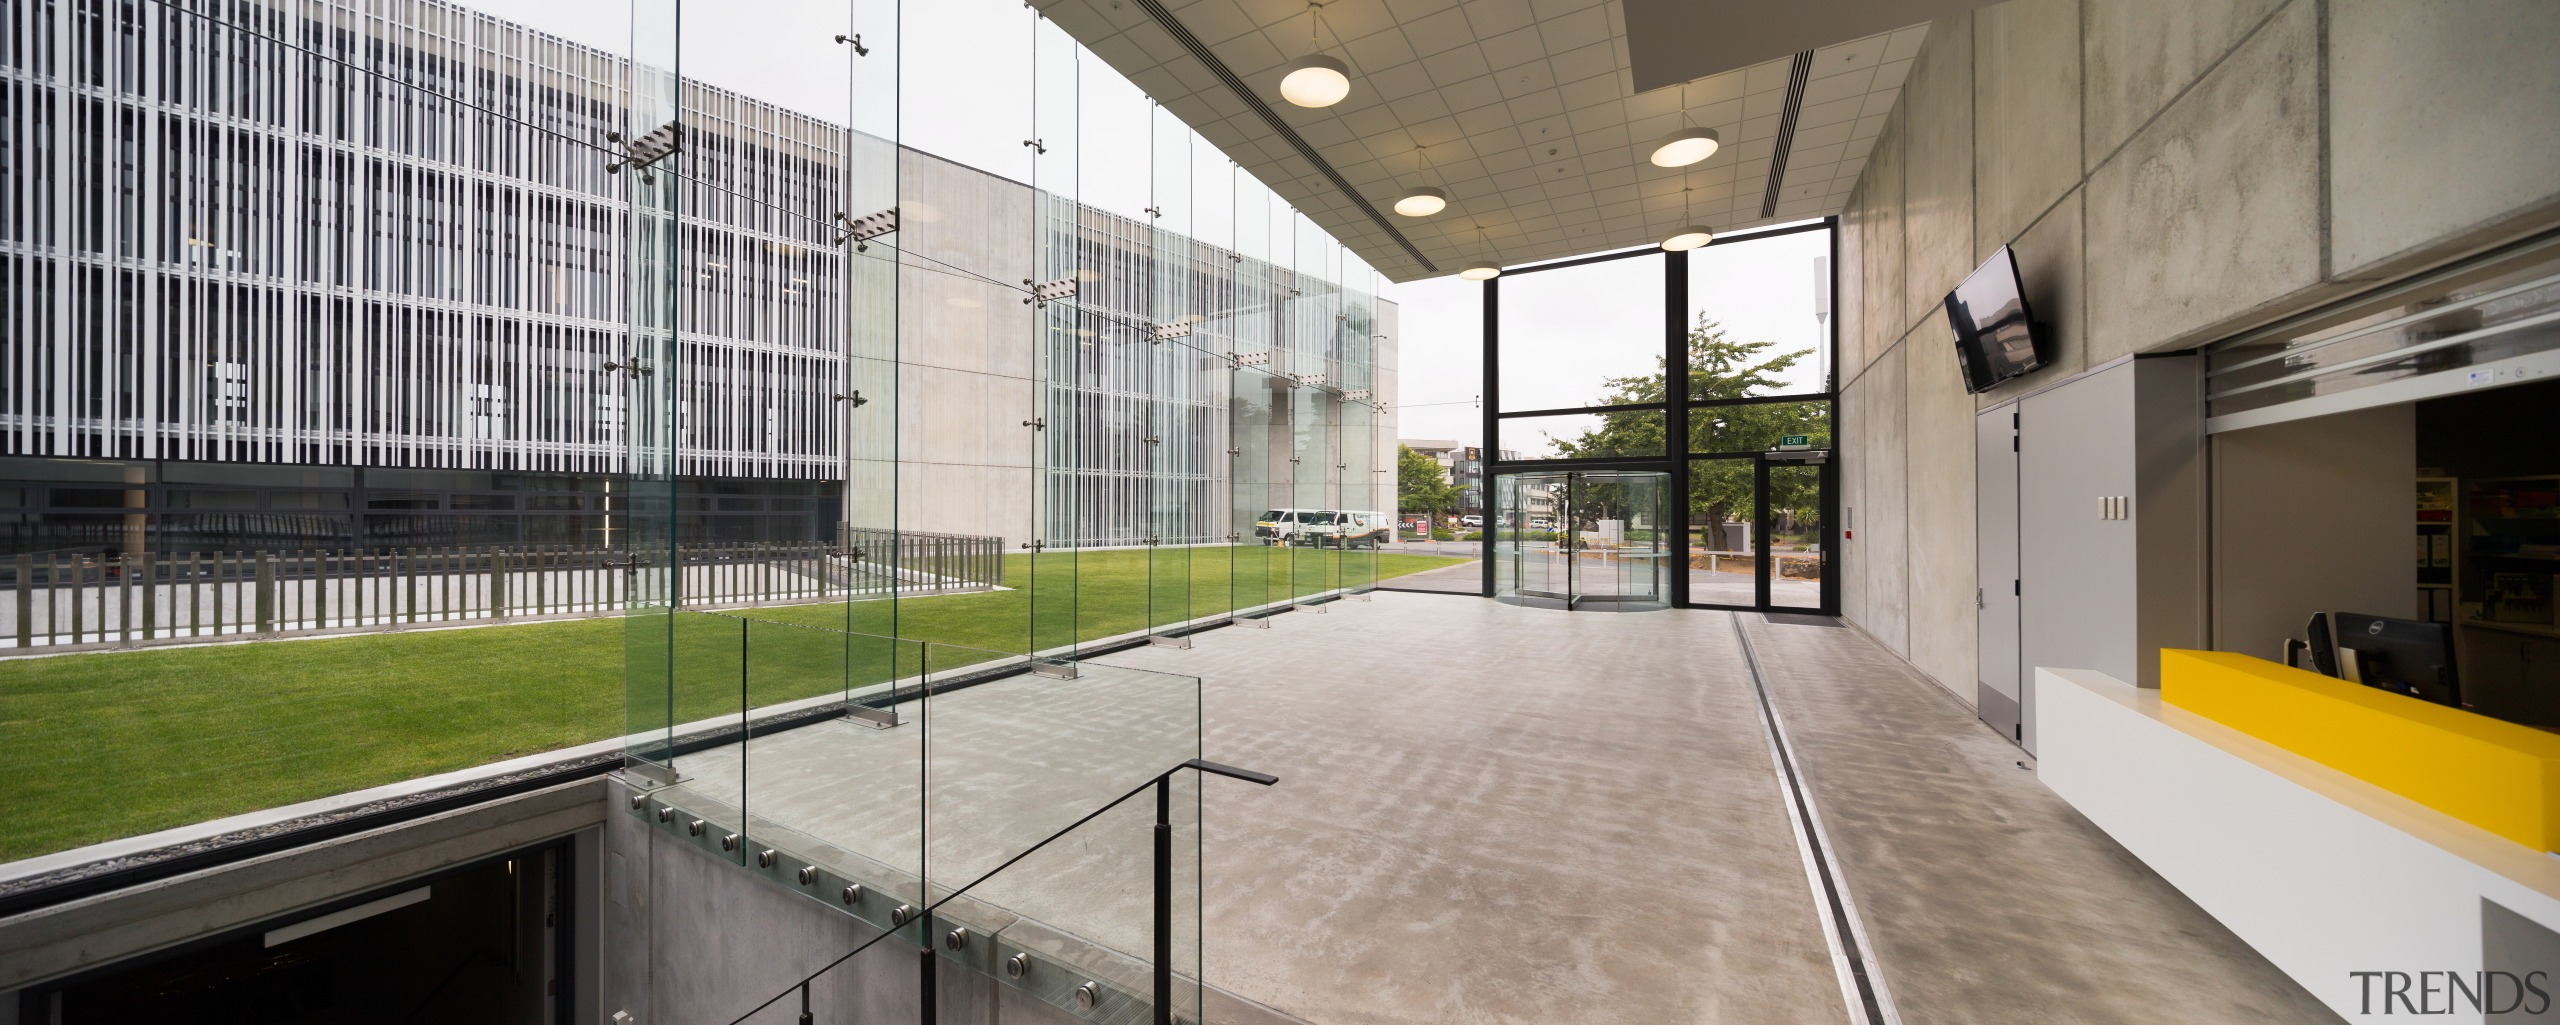 The new Management Faculty building entrance at the architecture, building, daylighting, house, real estate, gray